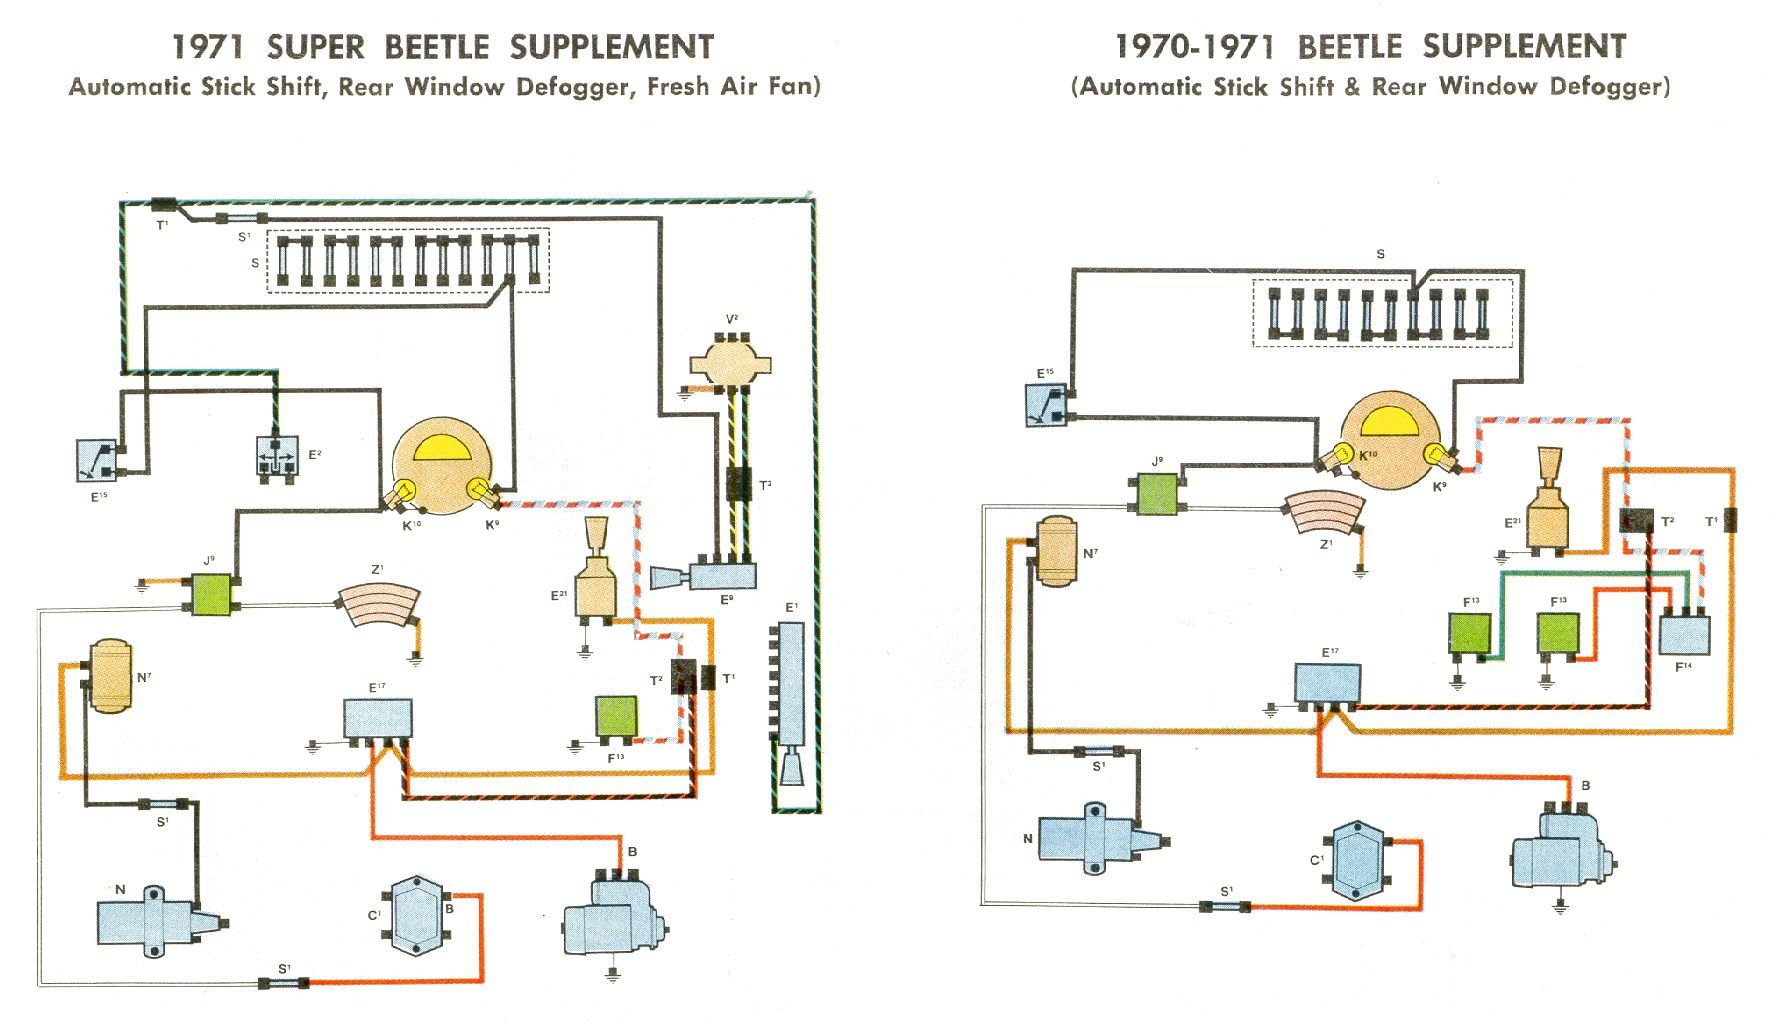 bug_7071_supplement diagram of 1972 vw bug engine on diagram download wirning diagrams 1973 vw super beetle wiring harness at creativeand.co